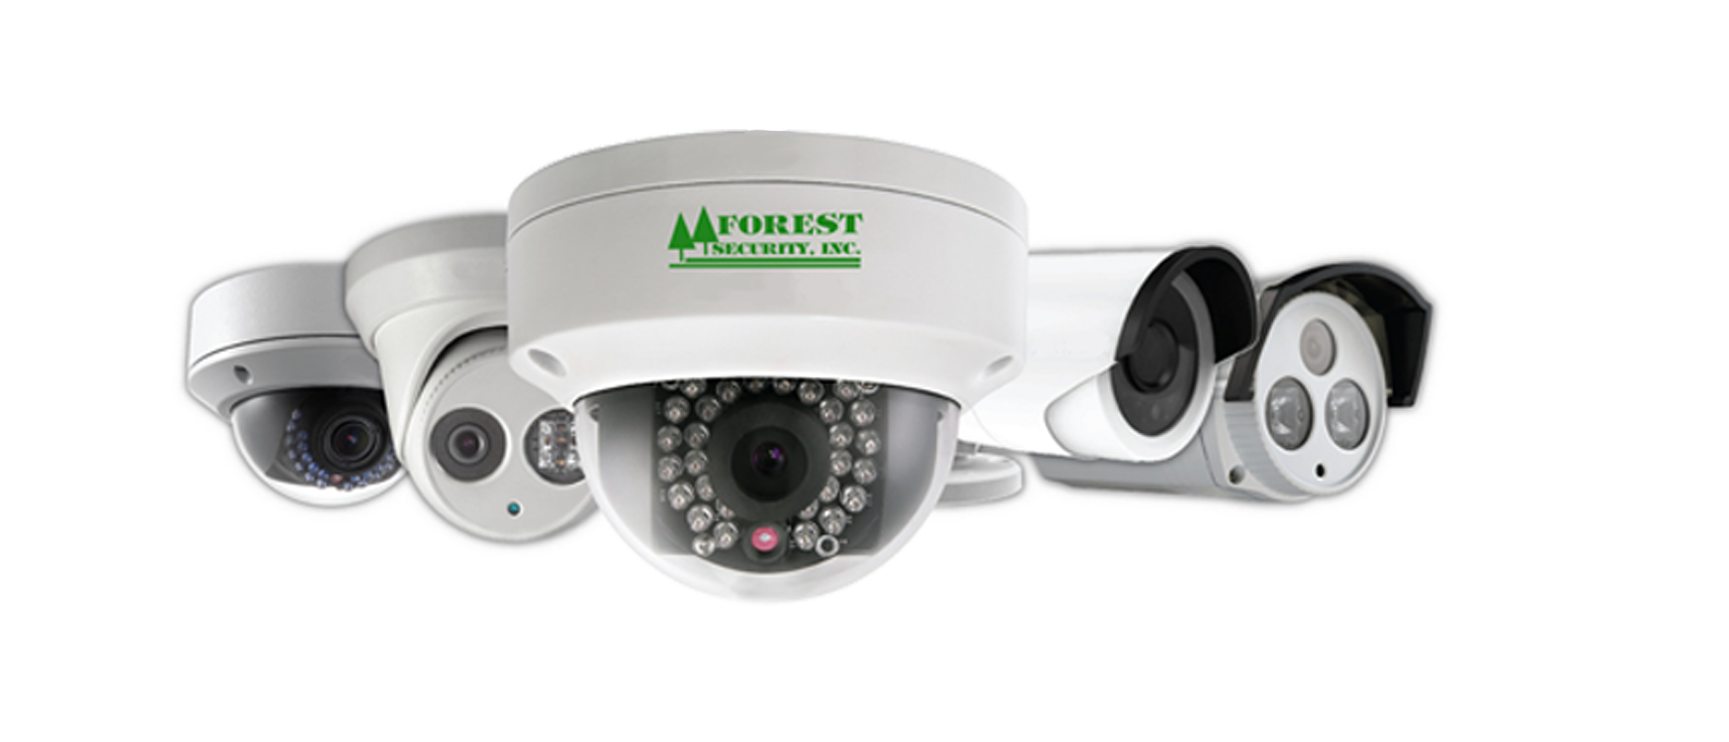 video security cameras Forest Security